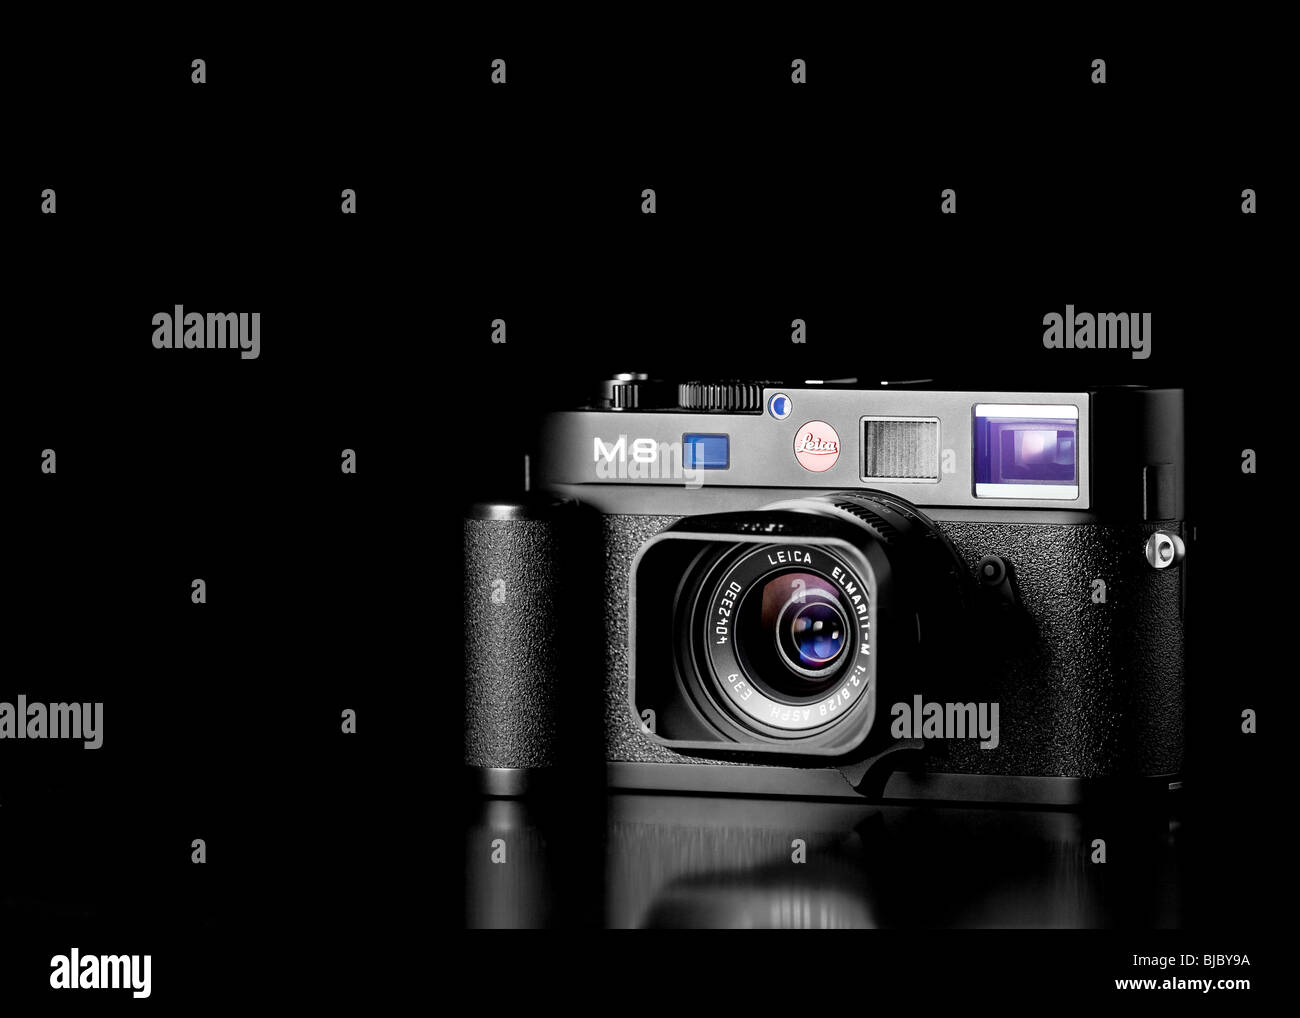 Black studio photograph of a Leica M8 digital rangefinder camera with hand grip and 28mm Elmarit lens - Stock Image